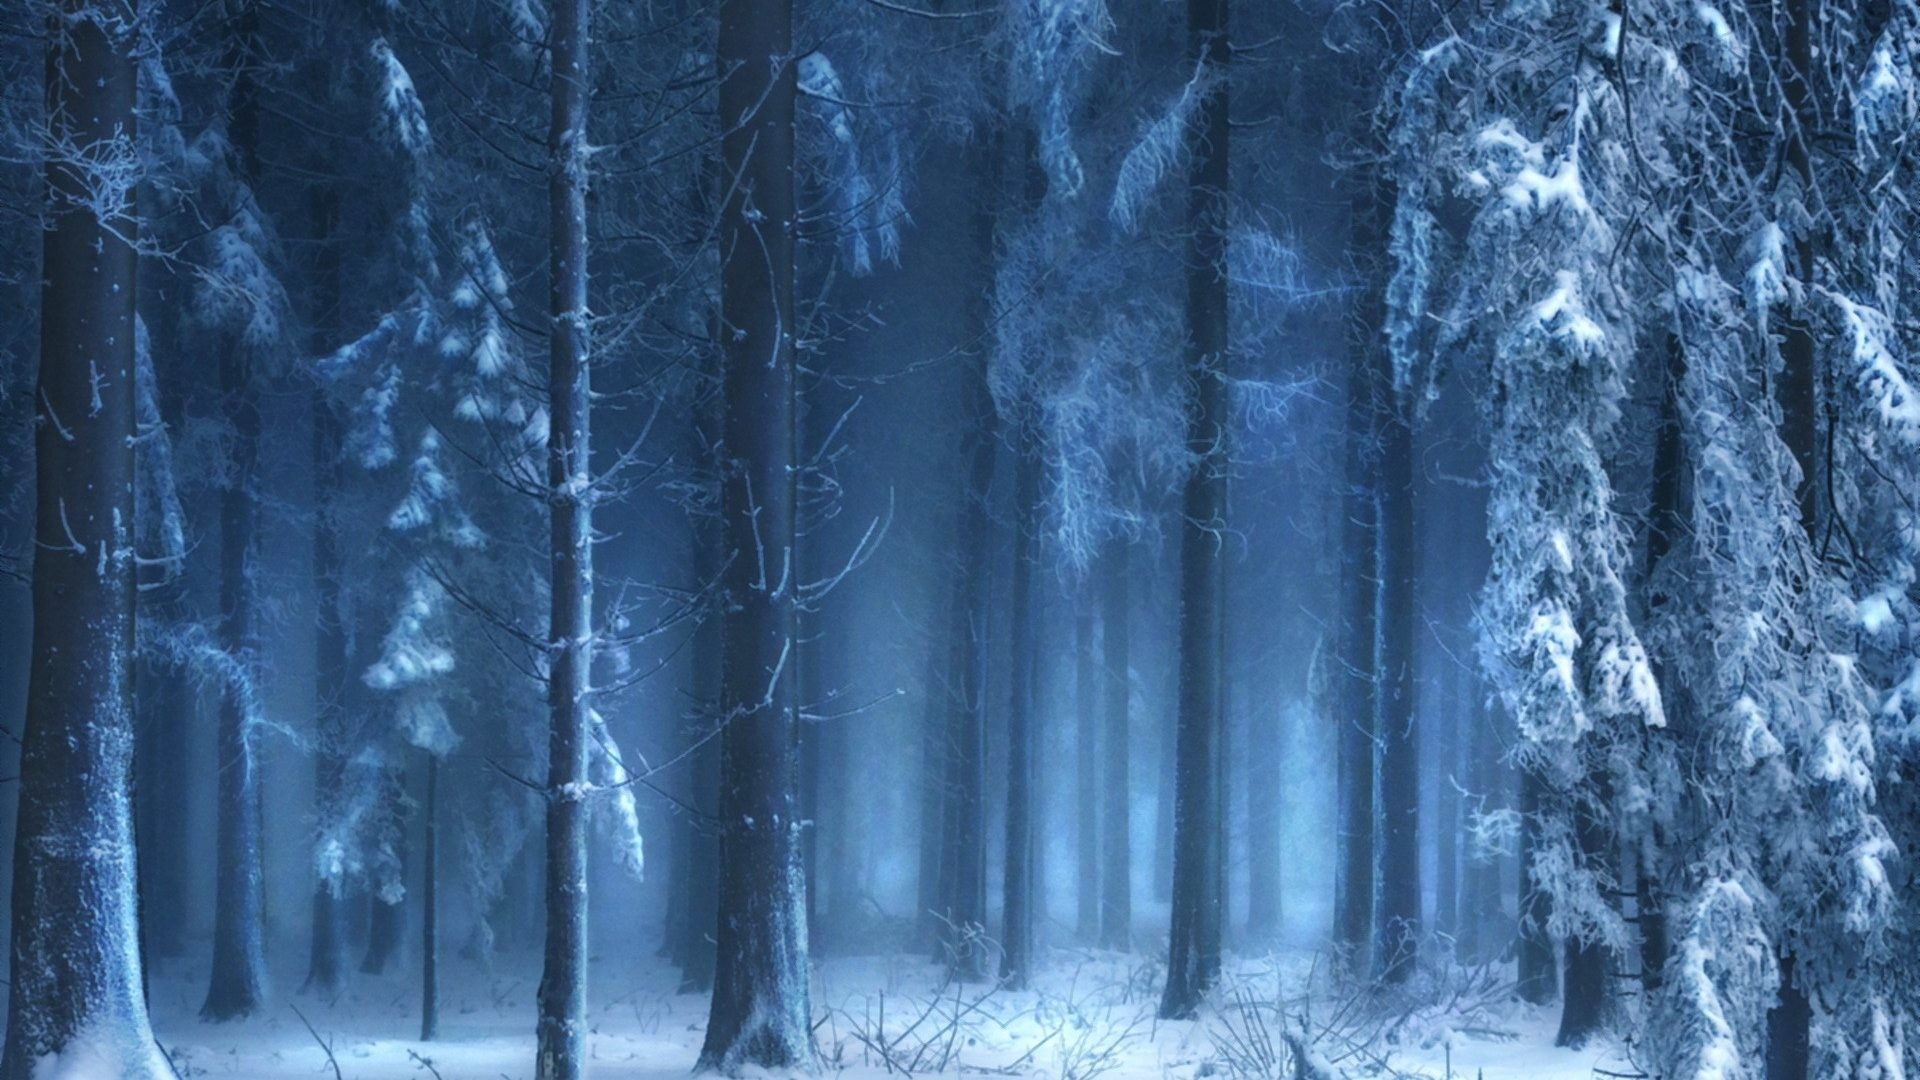 Christmas Wallpaper Snow Falling Falling Snow Animated Wallpaper 57 Images